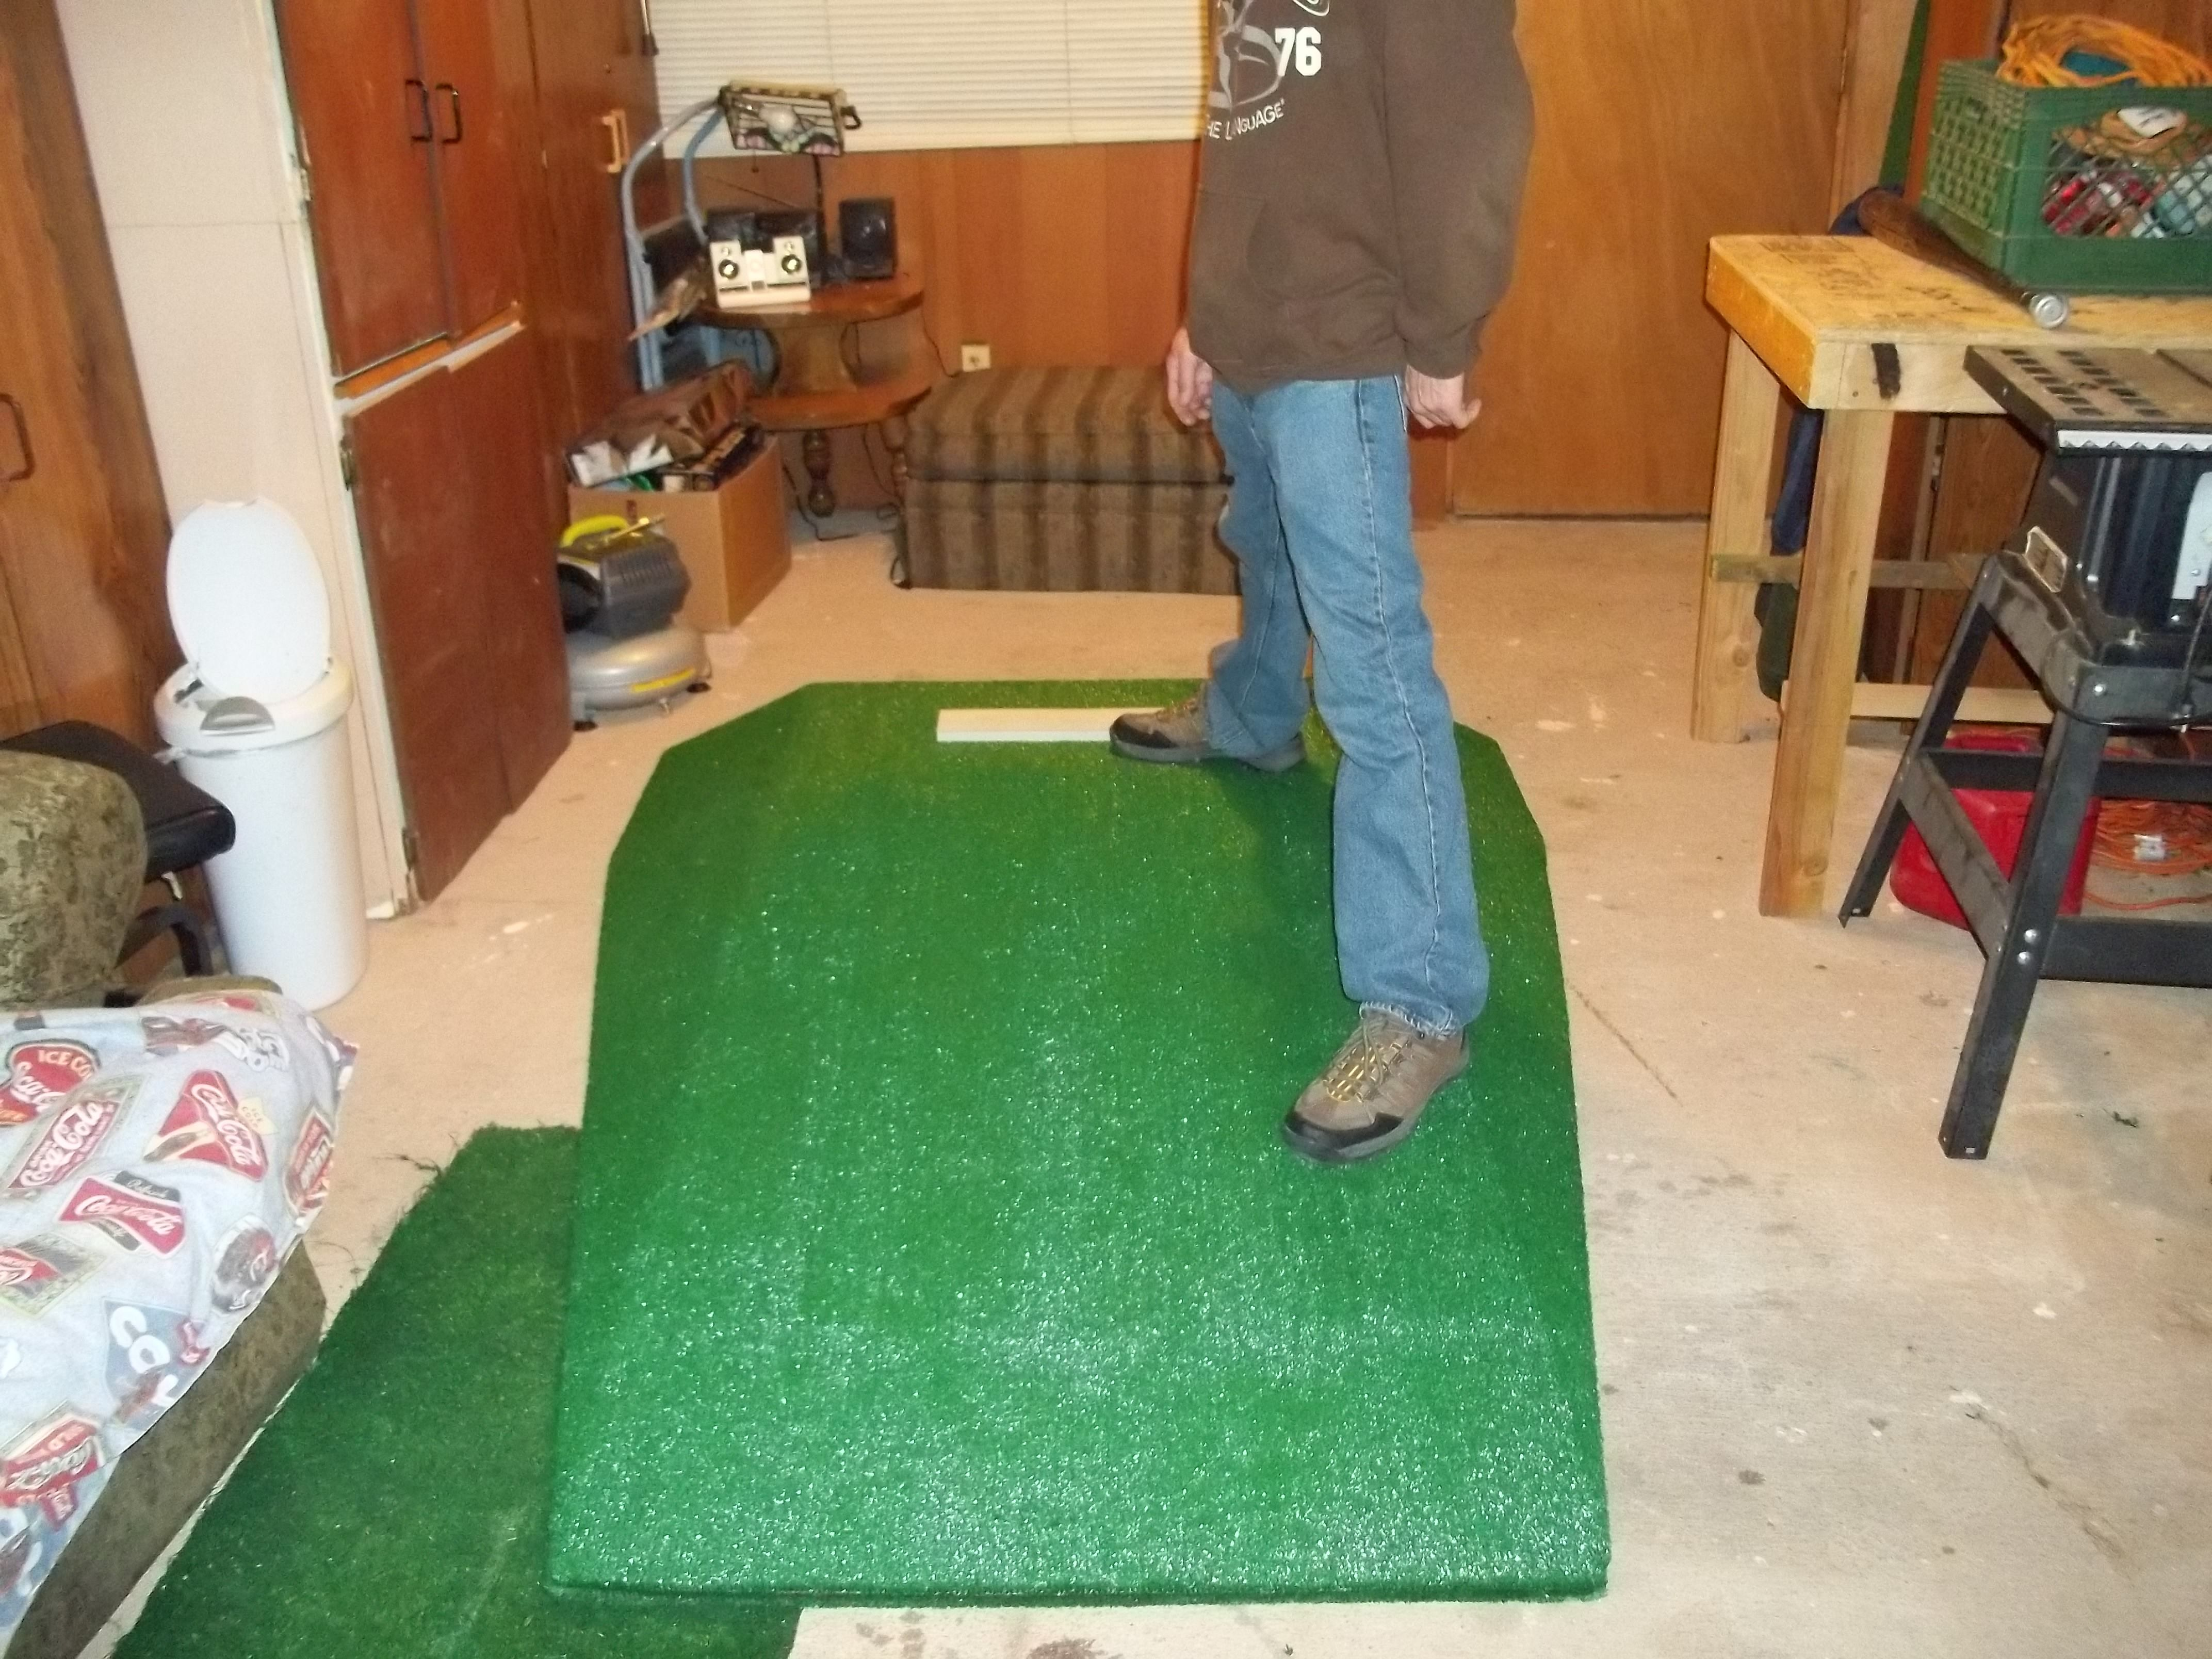 7 1 2ft x 6ft x 6in portable pitching mound for ages 5 and older